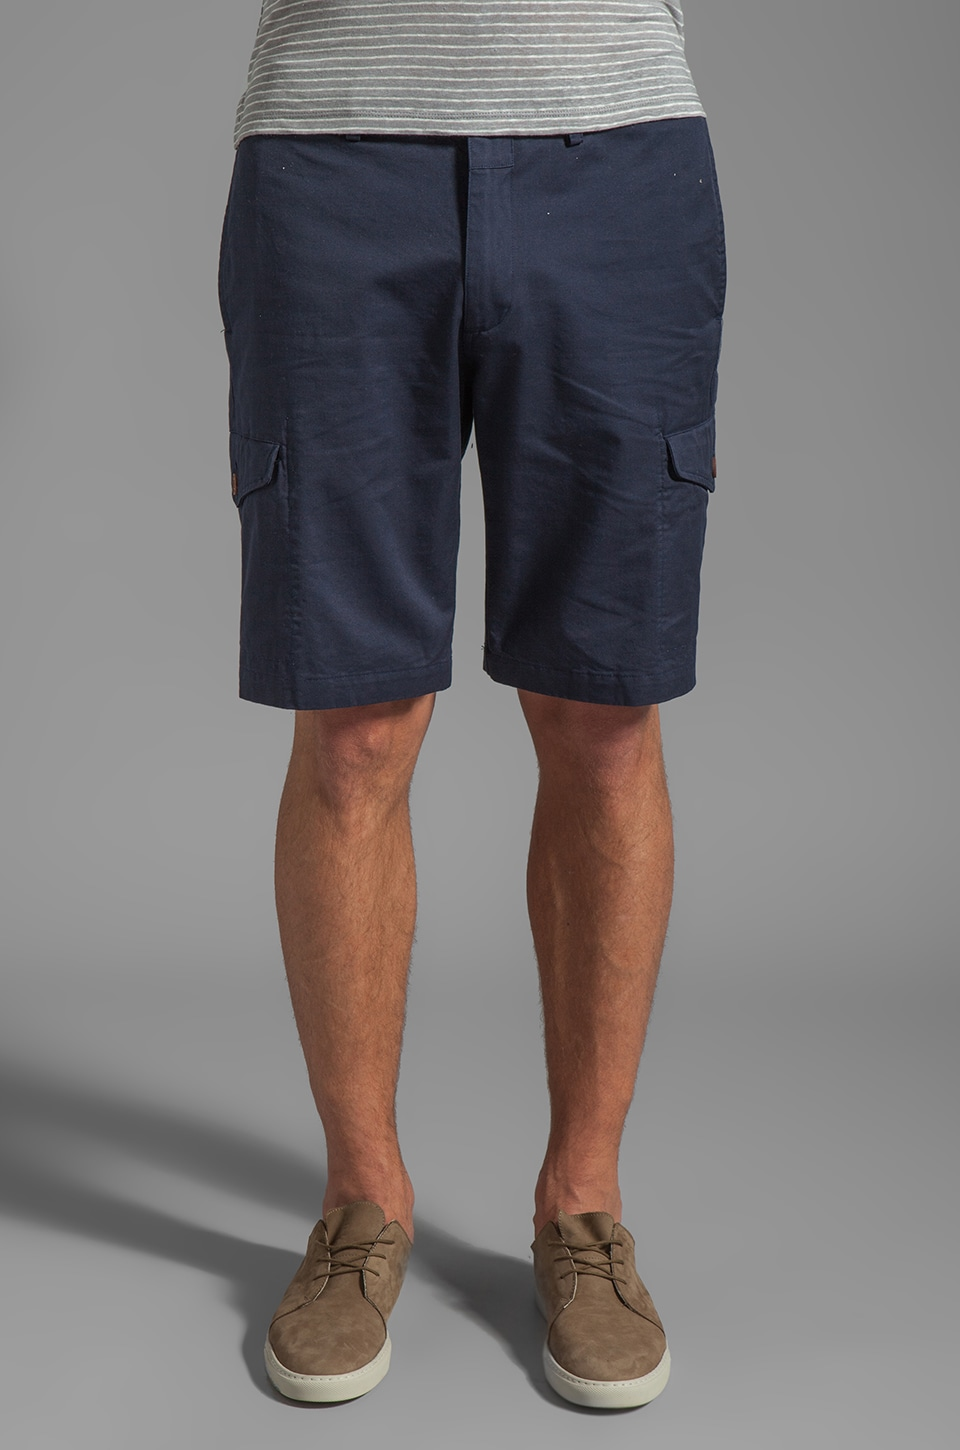 Shades of Grey by Micah Cohen Cargo Short in Navy Twill